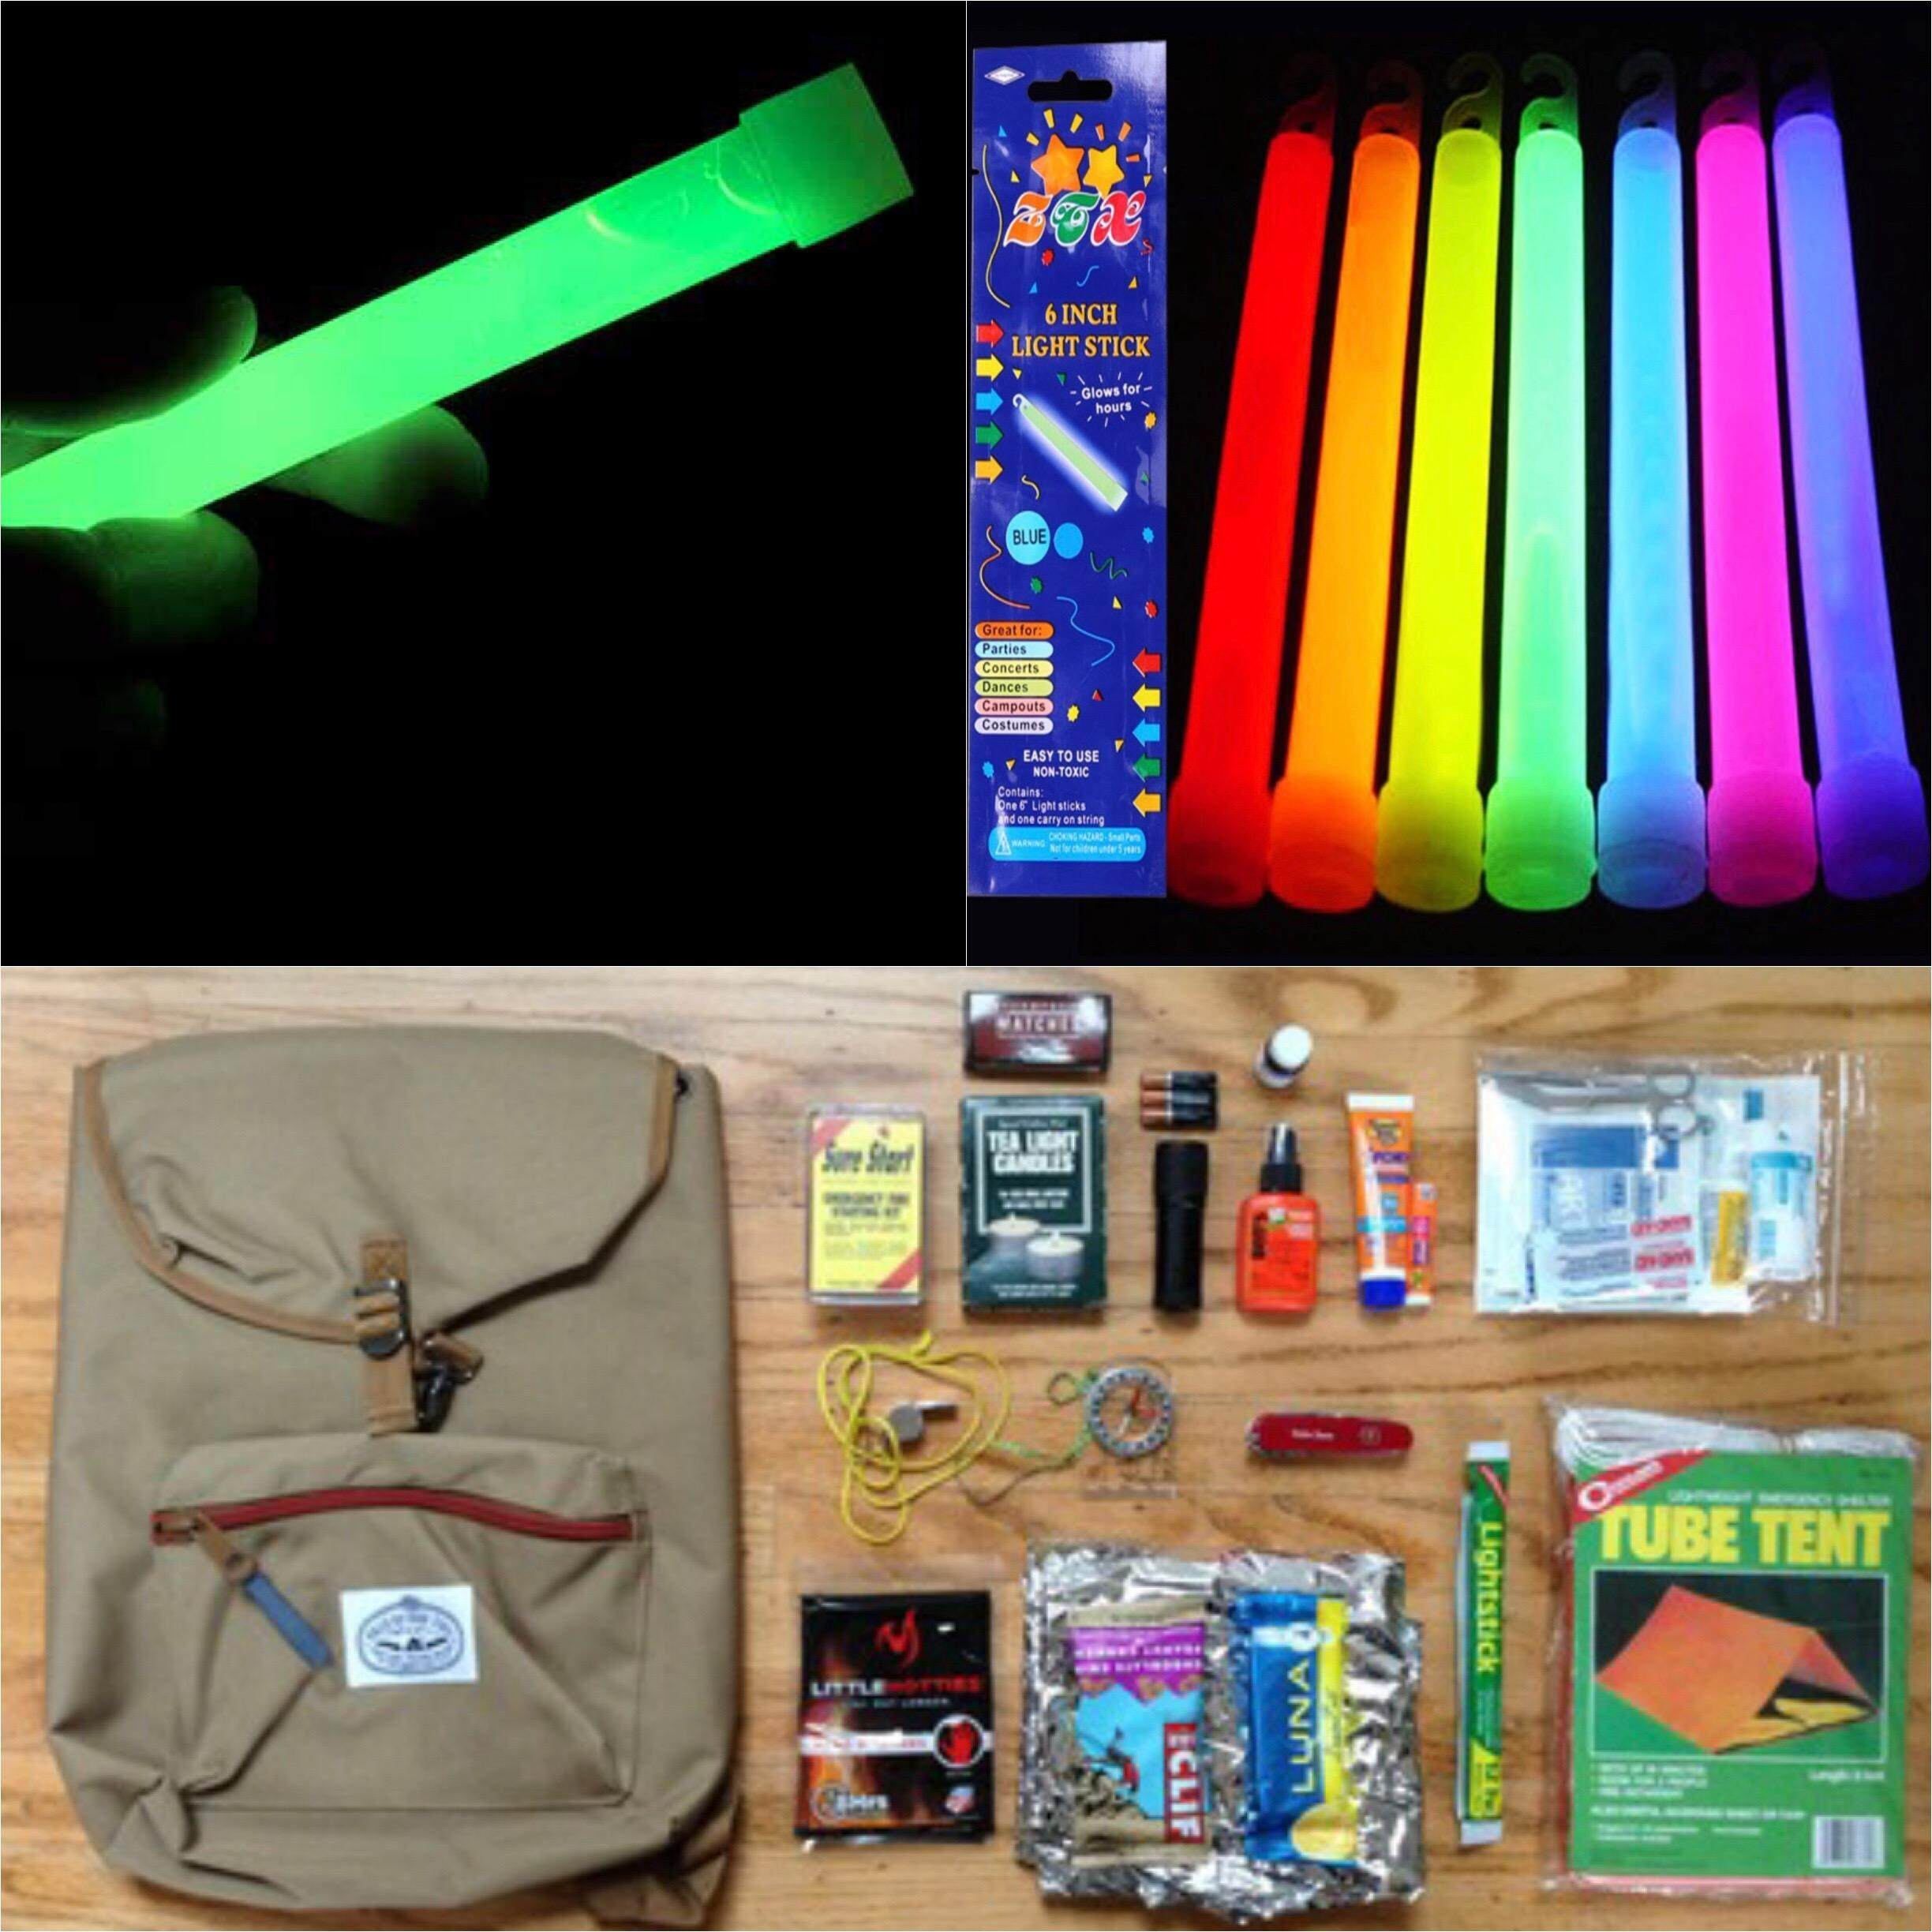 Emergency Signal Light Stick By Emergencygearbackpack.